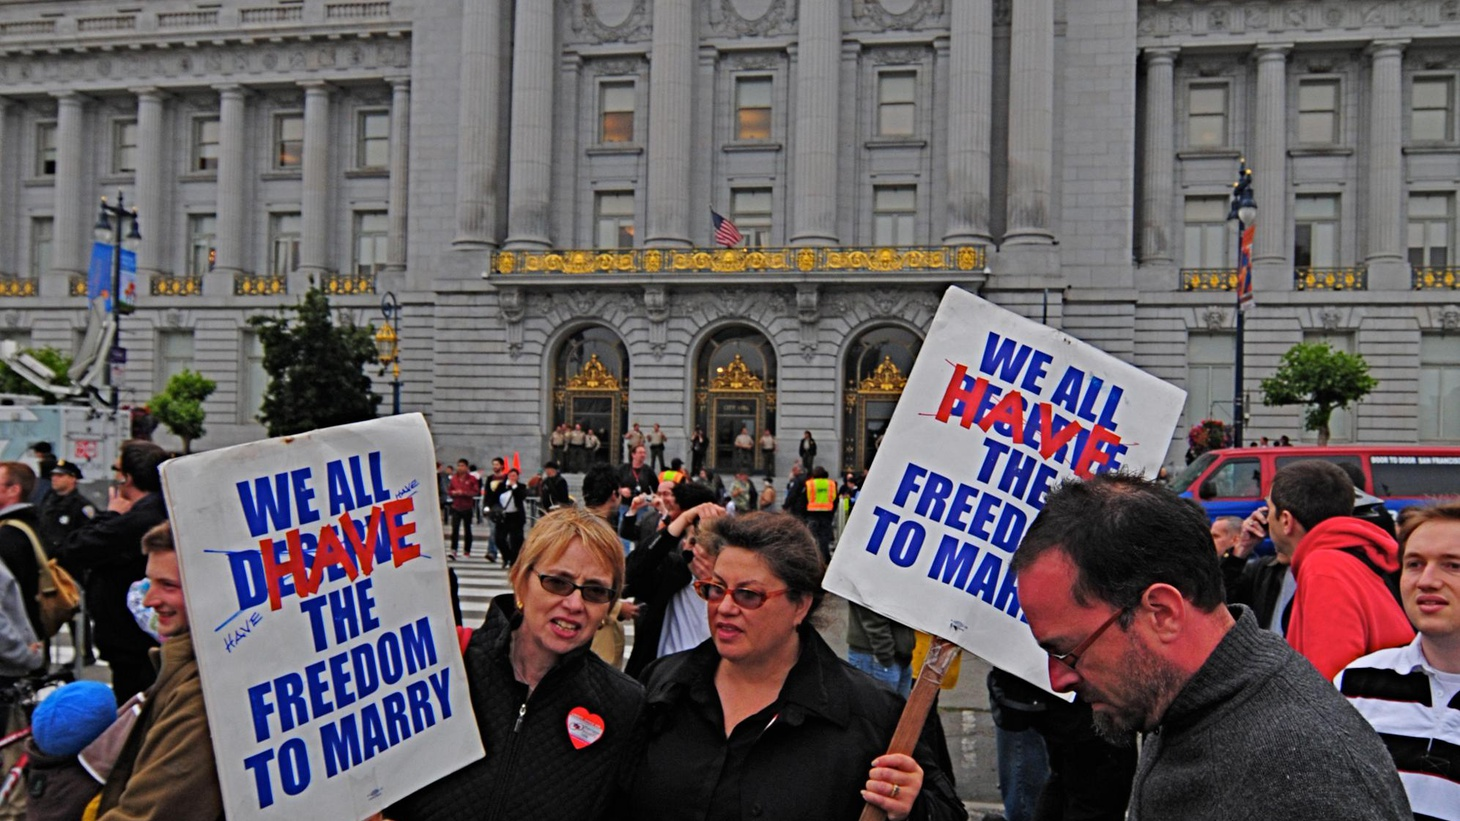 After California voters banned same-sex marriage, federal courts declared it unconstitutional. Tomorrow, the Supreme Court will hear the case. What are the options?